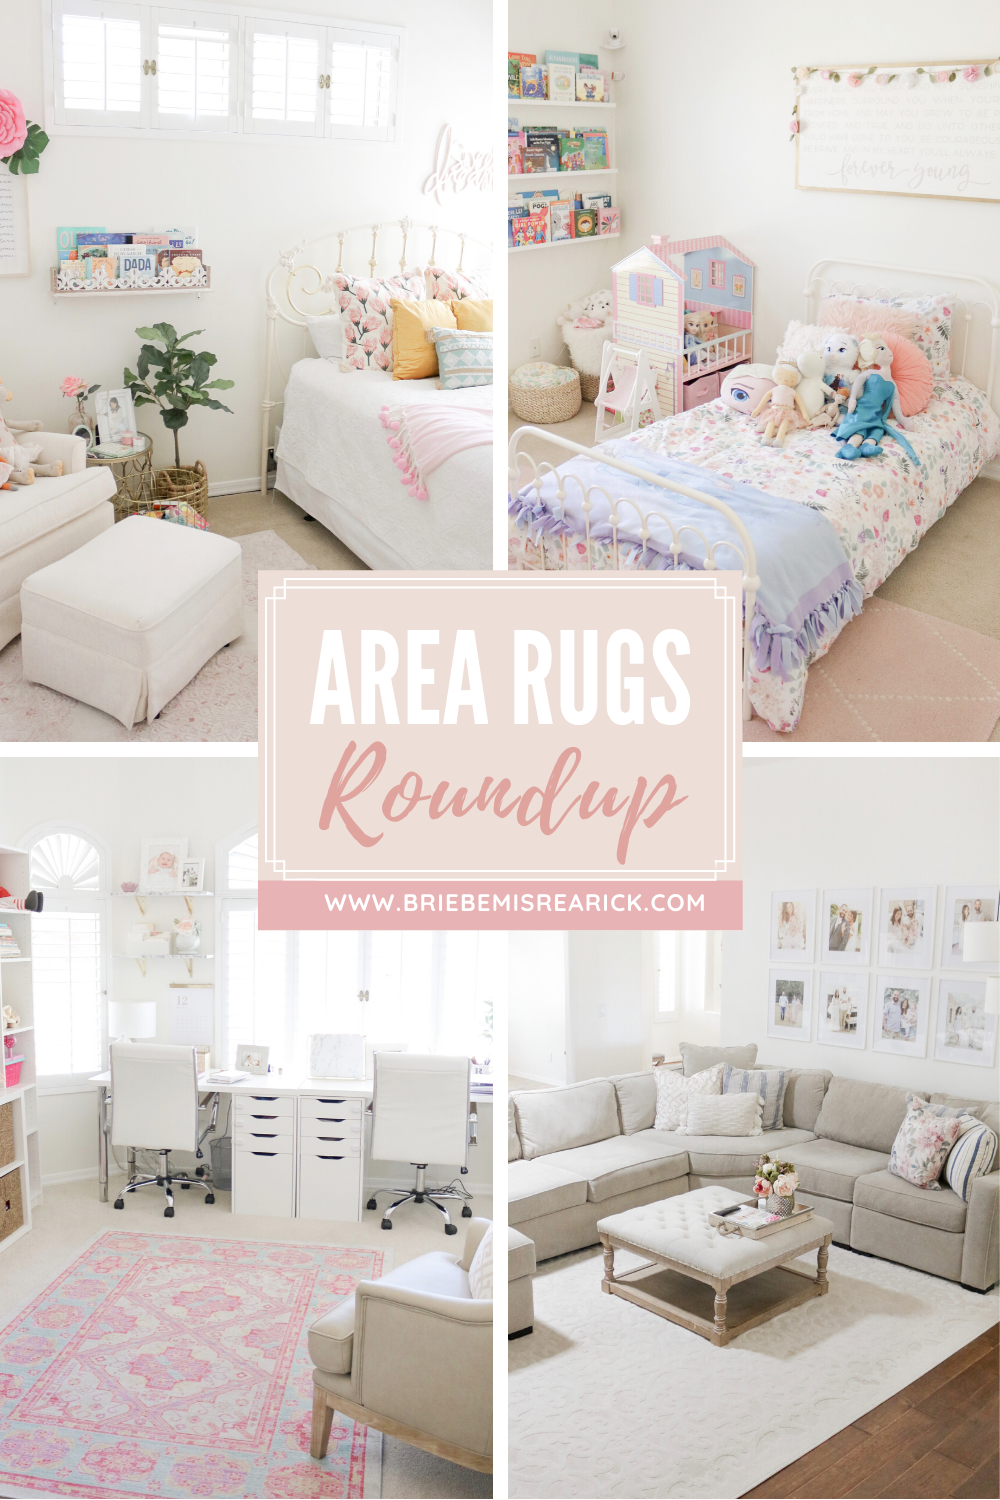 Area Rugs Roundup + My Favorites in our Home!